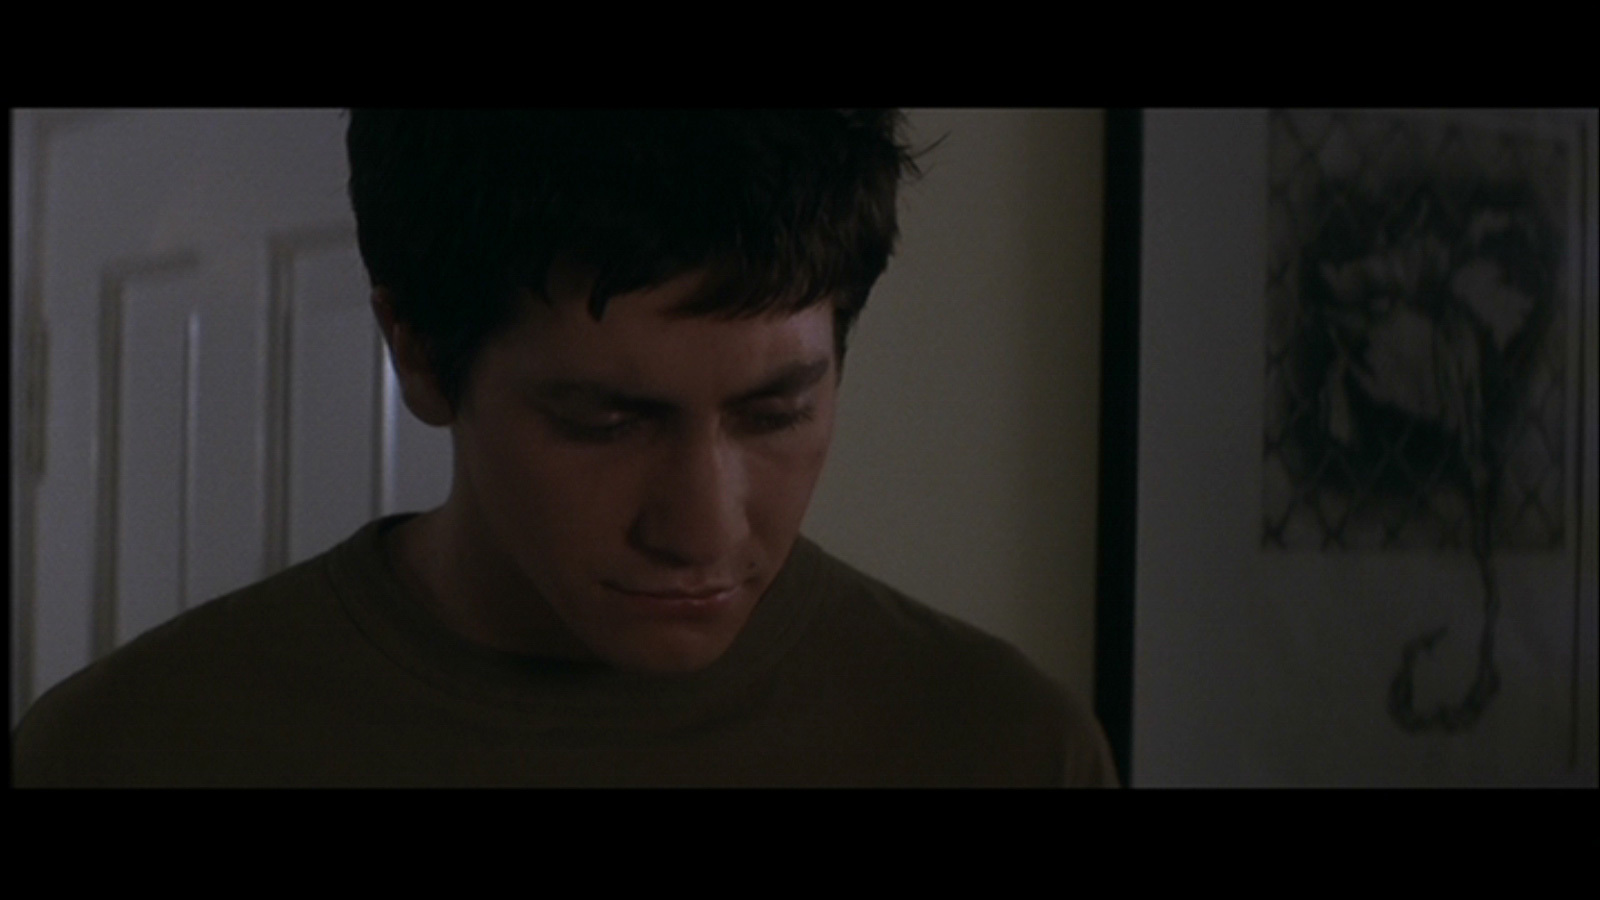 donnie darko detailed summary essay View and download donnie darko essays examples also discover topics, titles, outlines, thesis statements, and conclusions for your donnie darko essay  semiotic analysis of 'donnie darko' view full essay  52997947 the end of the film also shows different scenarios indicating that since donnie died, the teacher got to keep teaching, the.